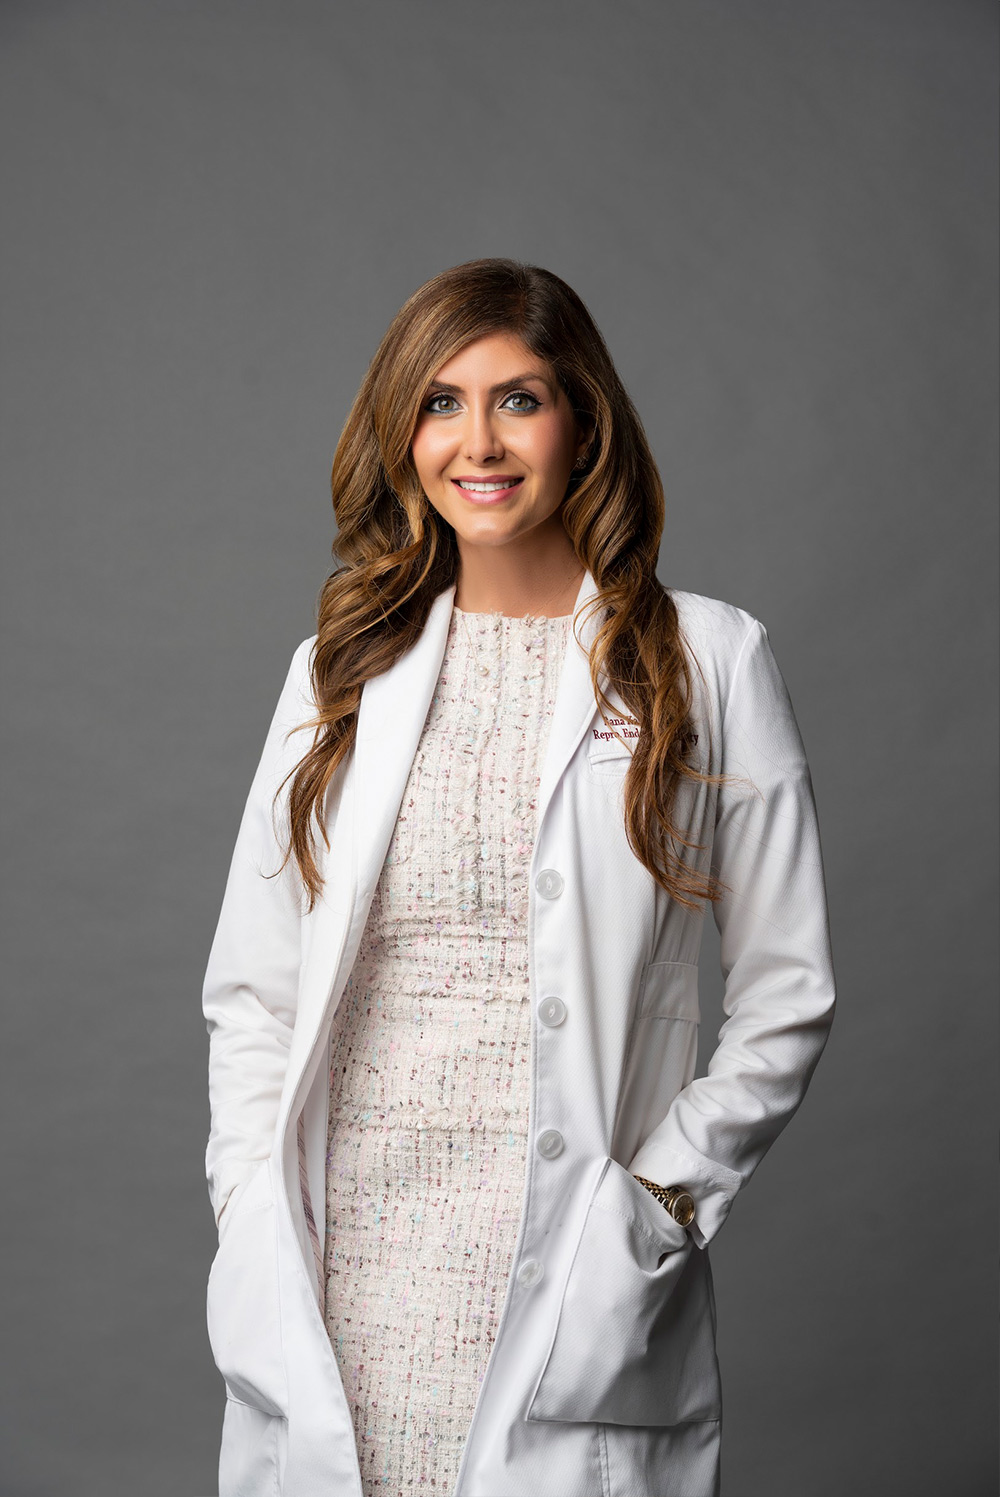 Looking for the Best Fertility and IVF Specialist Near Me? Banafsheh N. Kashani, MD, FACOG